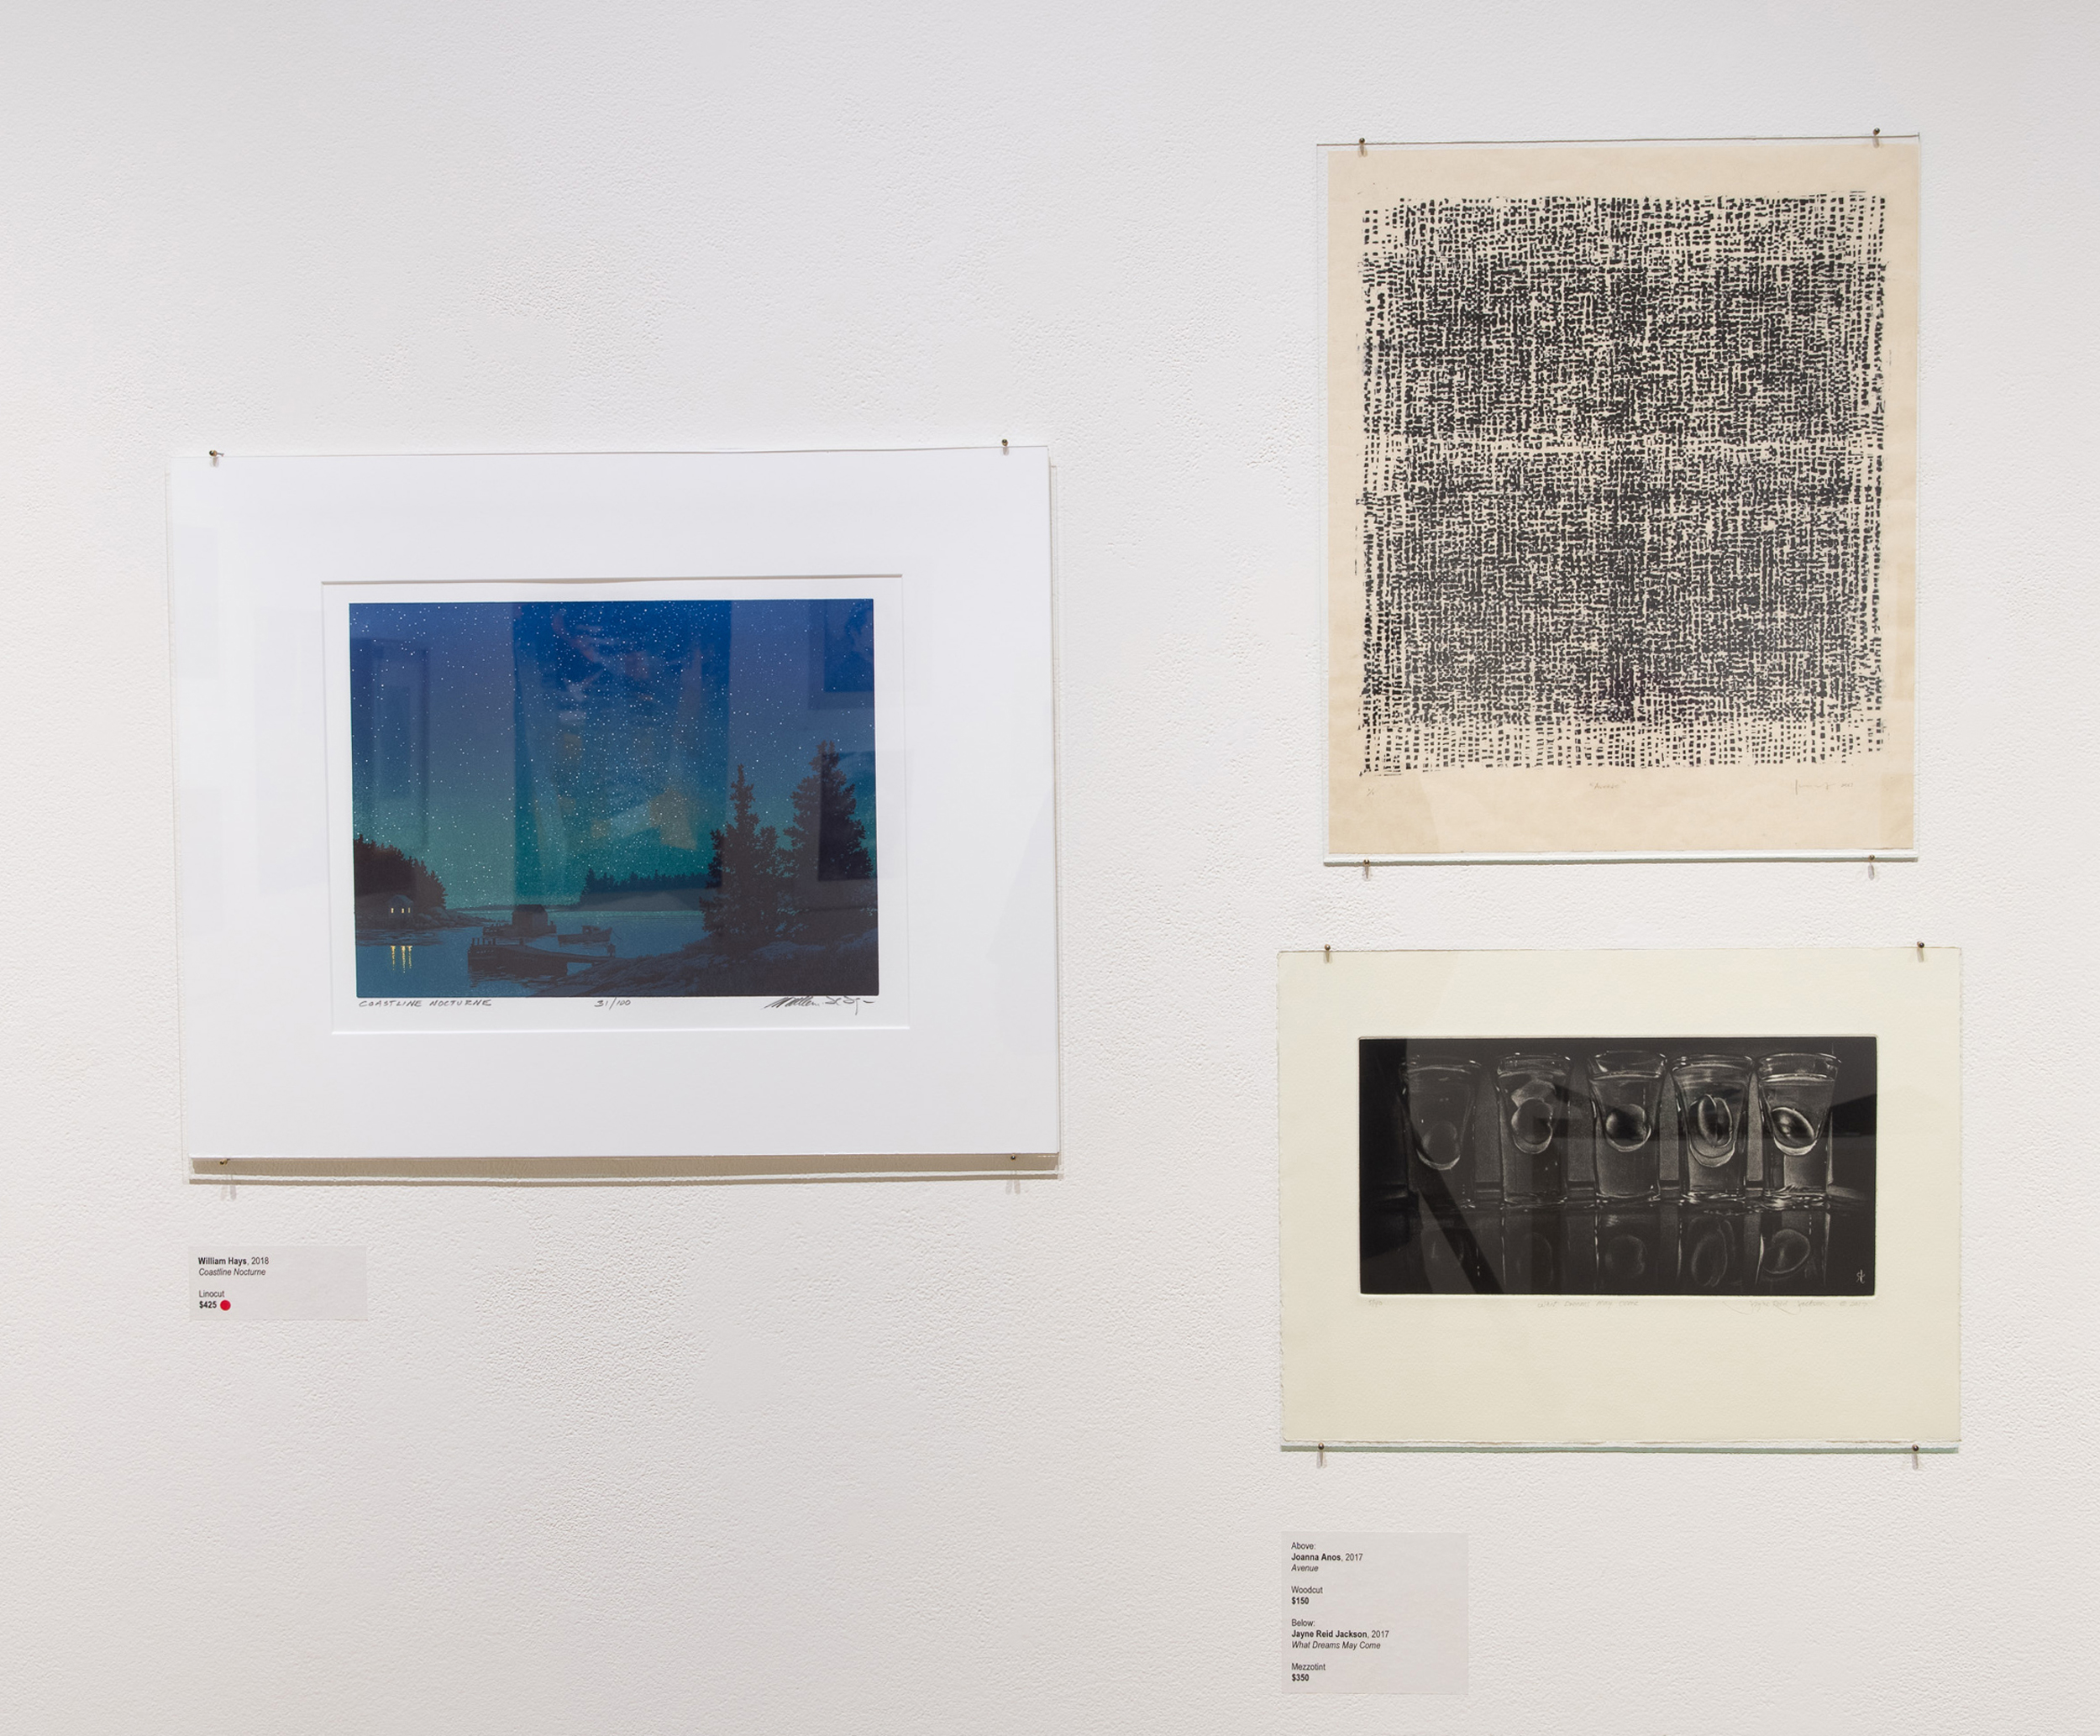 Highpoint PrintmakingStand Out Prints Exhibit180927a0489.JPG